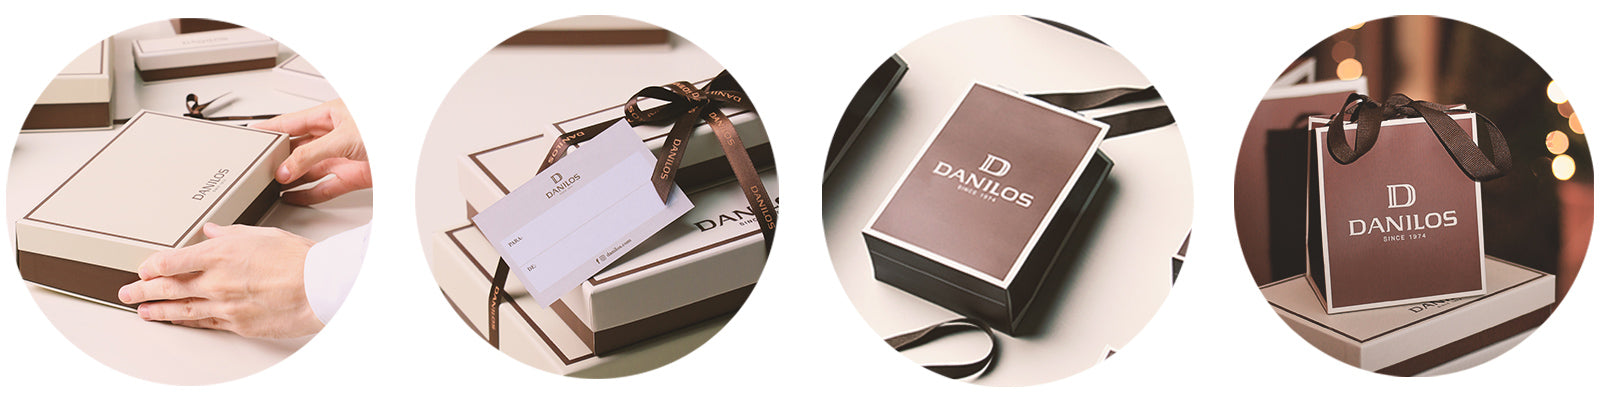 Danilos Gift Packaging